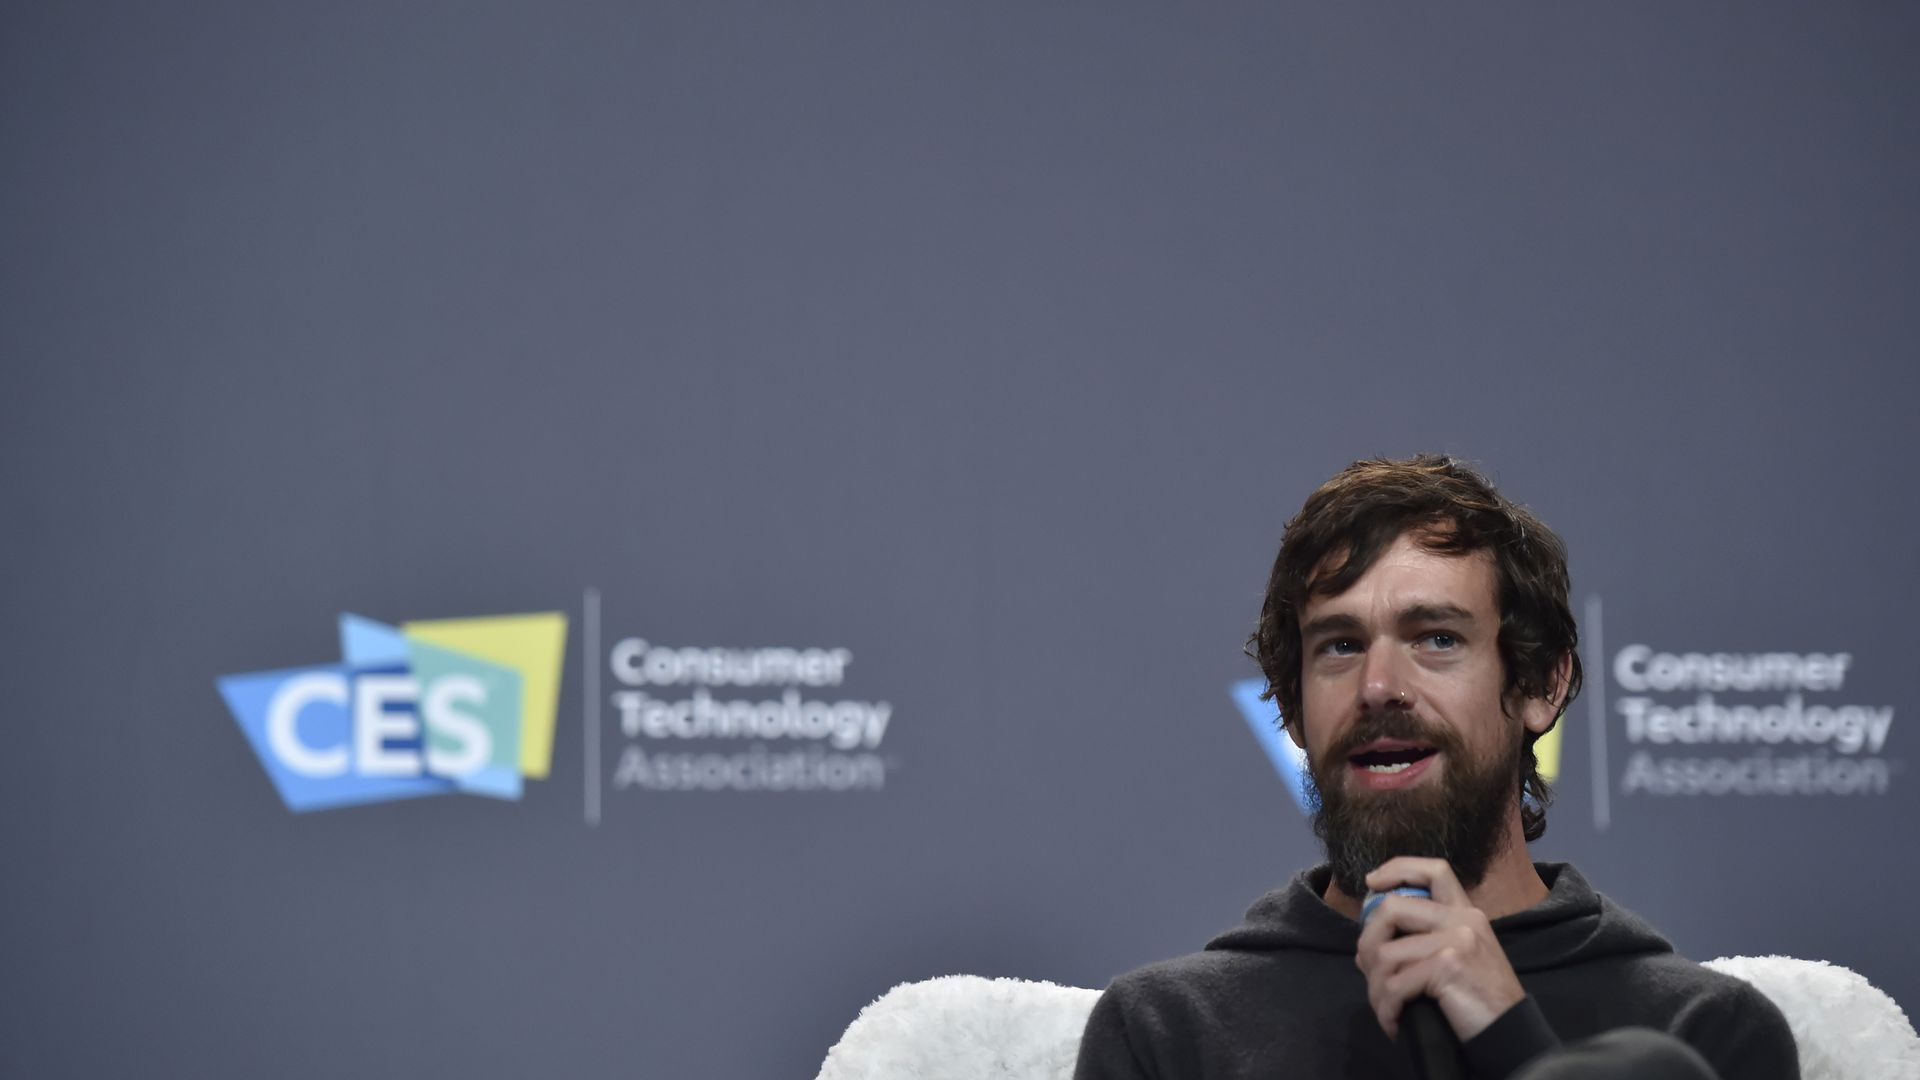 In this image, Twitter CEO Jack Dorsey sits in front of a dark gray wall at a conference, speaking into a microphone.